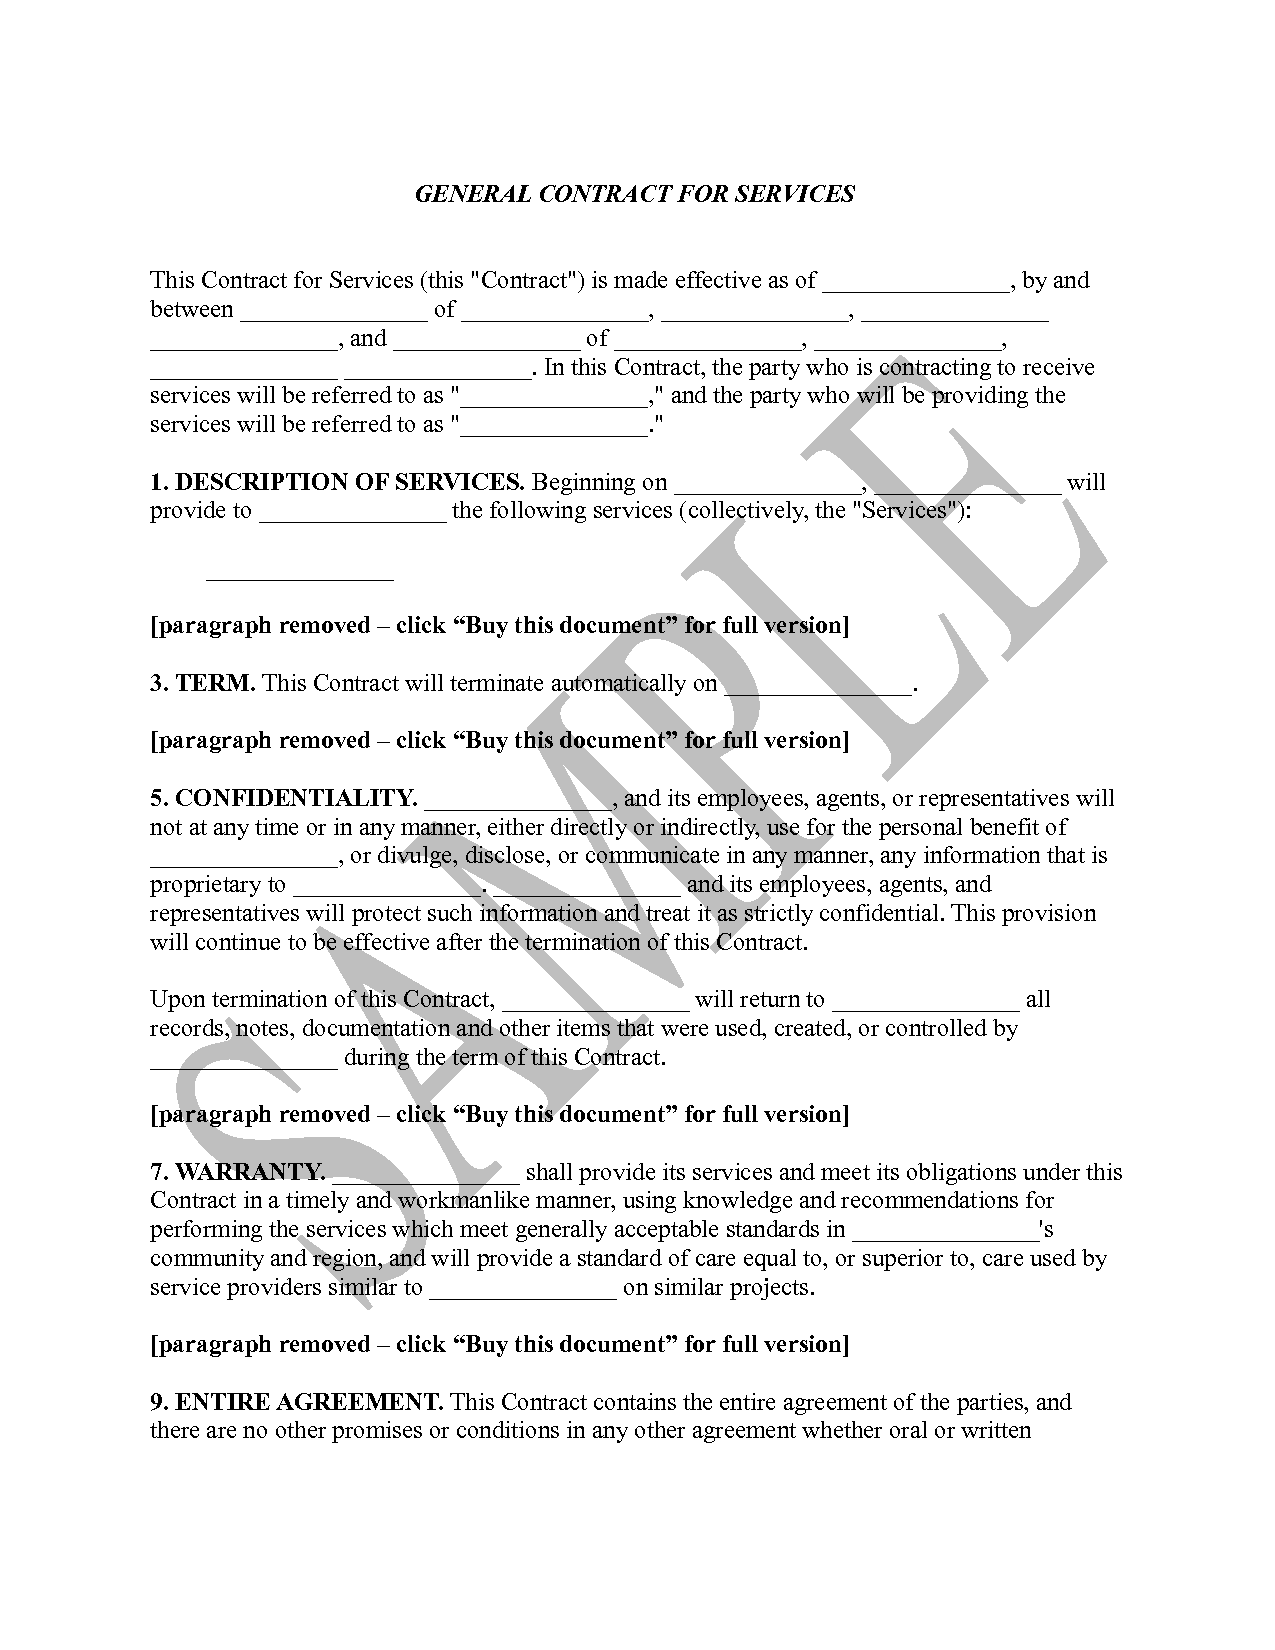 General-Contract-for-Services by aliasghar1984 - general contract ...